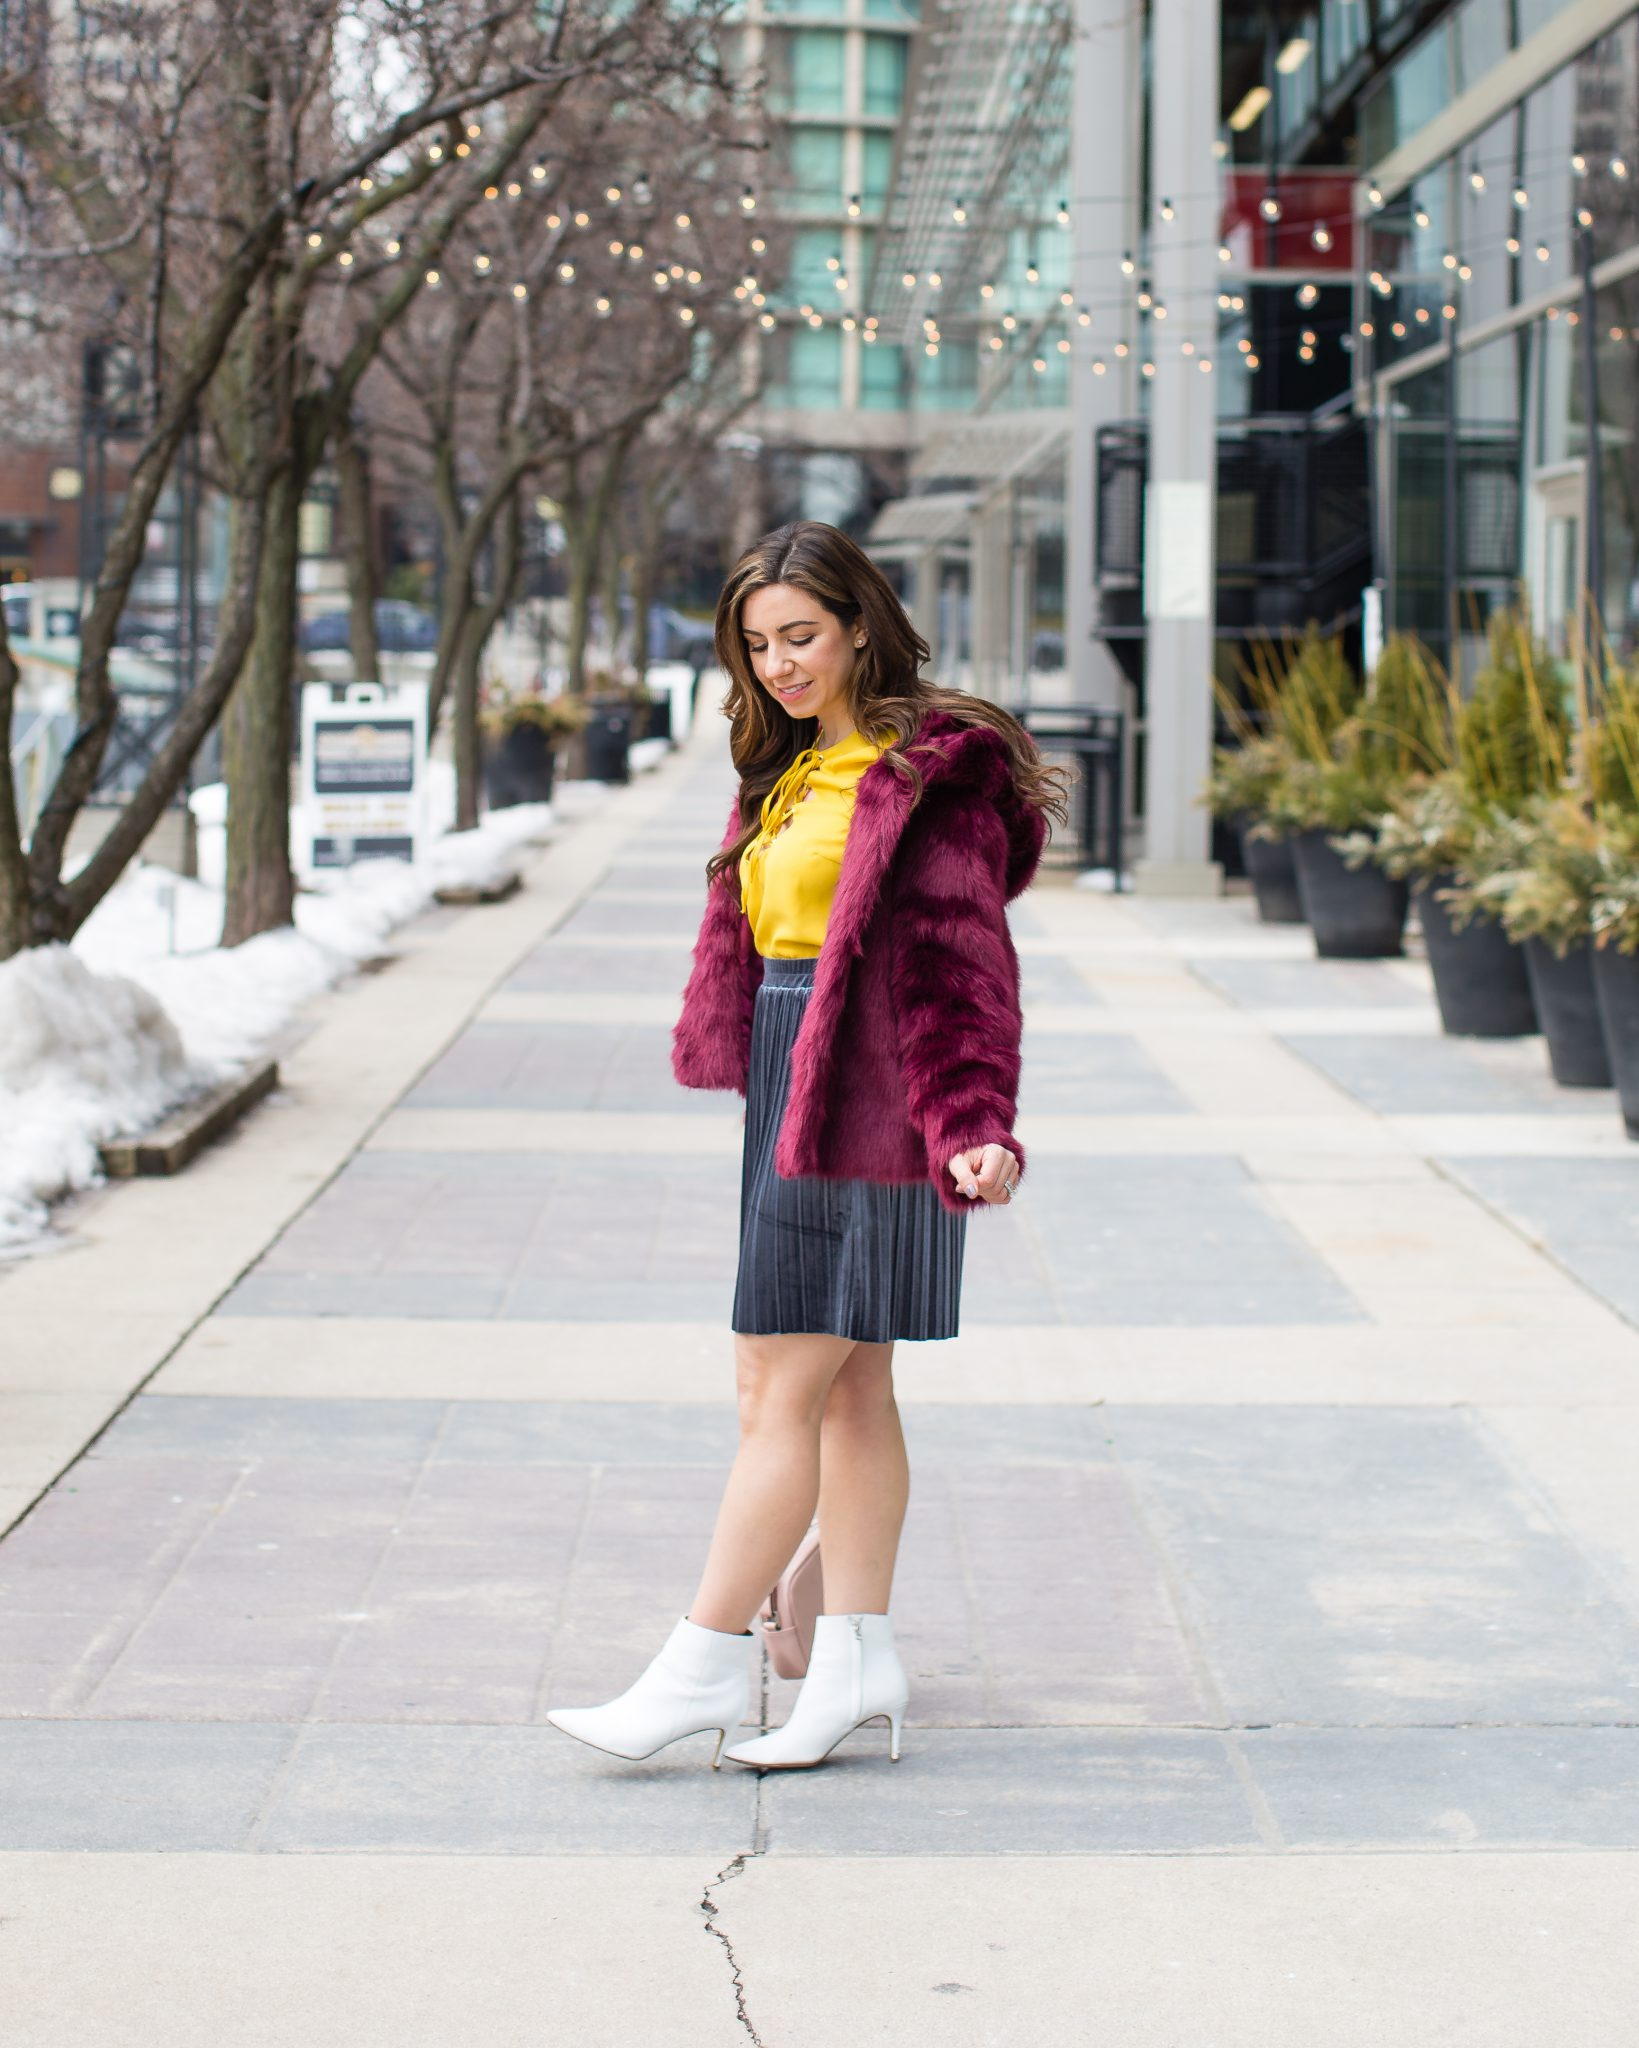 Lifestyle blogger Roxanne of Glass of Glam wearing a missguided faux fur coat, Shein mustard top, Asos velvet skirt, and white booties - A primary colors outfit by popular Chicago fashion blogger Glass of Glam